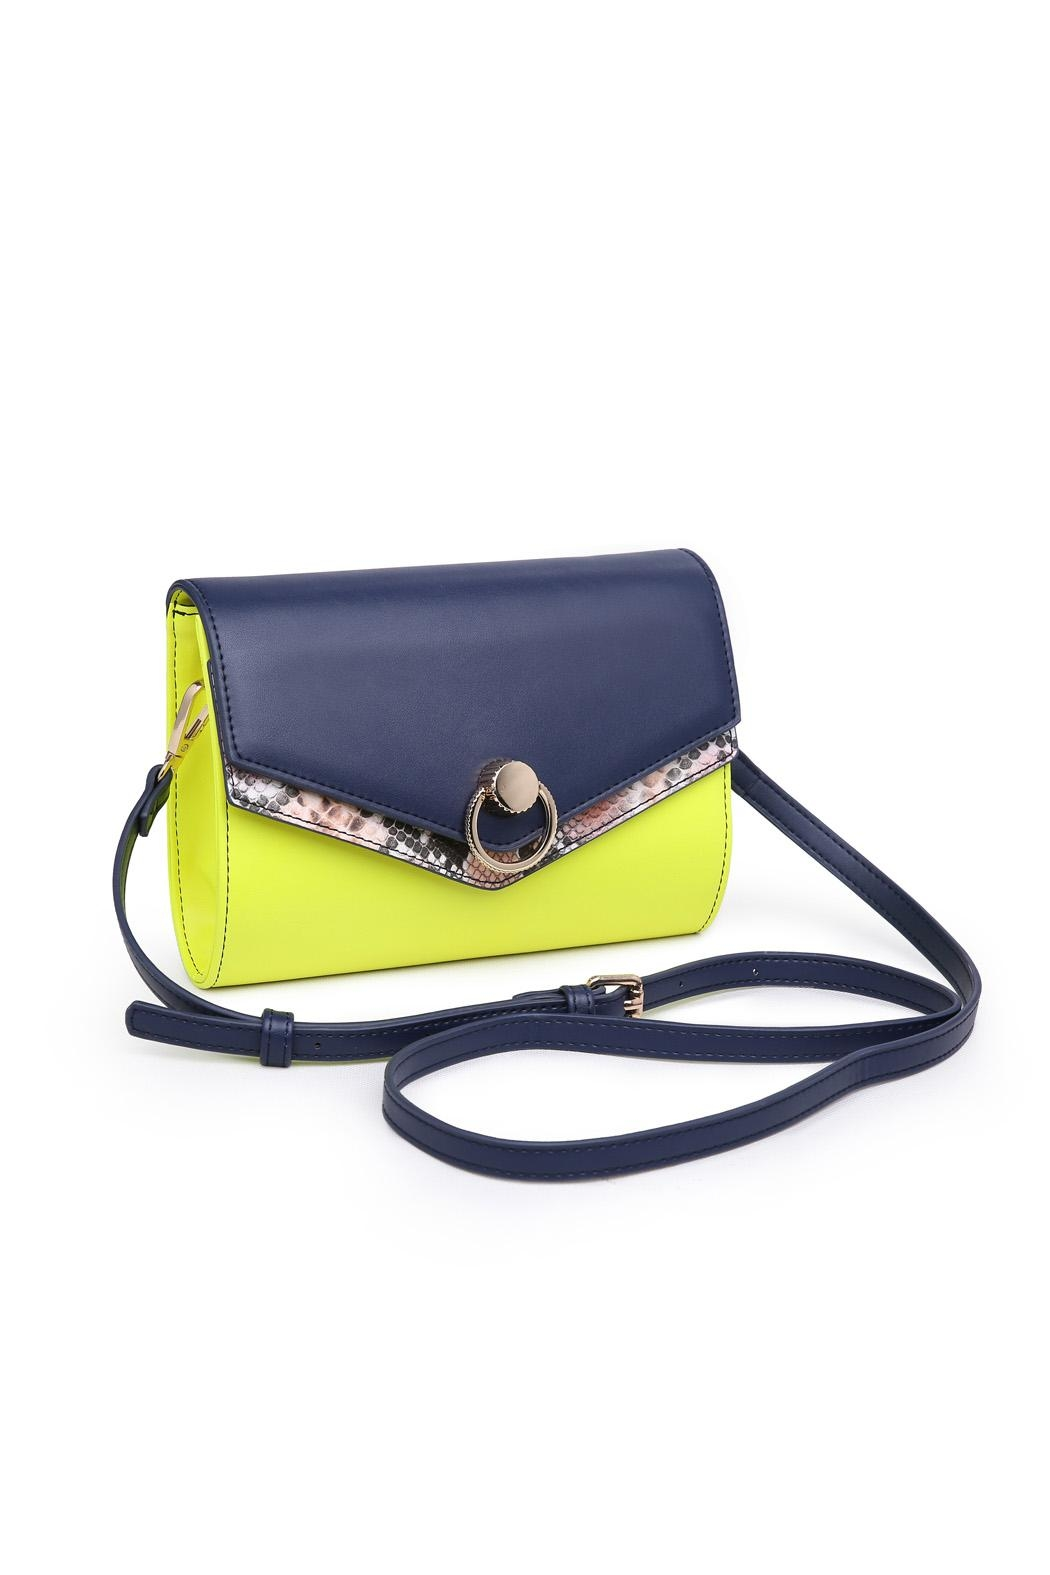 Urban Expressions Neon Crossbody Bag - Front Full Image